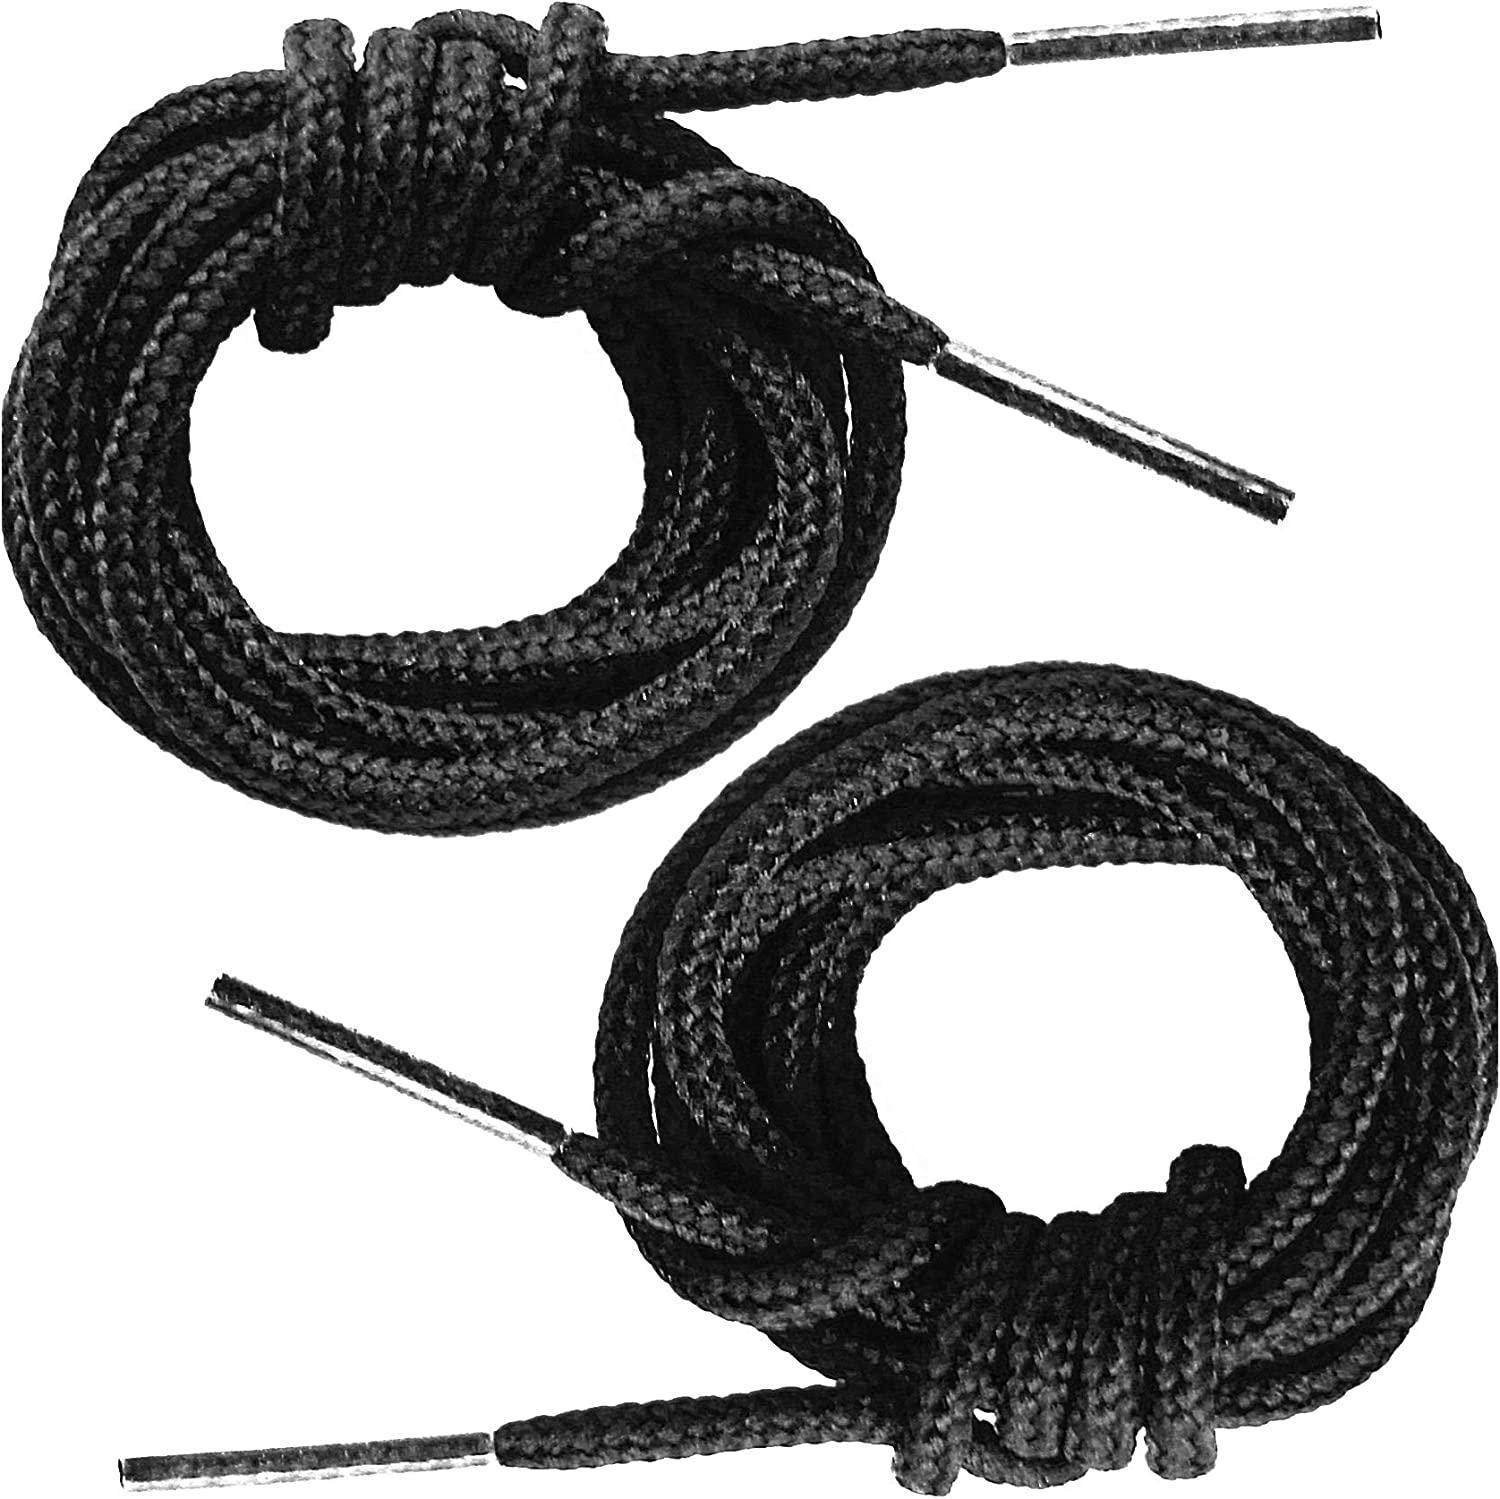 Mercury + Maia Round Thin Dress Shoelaces i 5 ☆ very popular Directly managed store 2 - Made Pack Pair